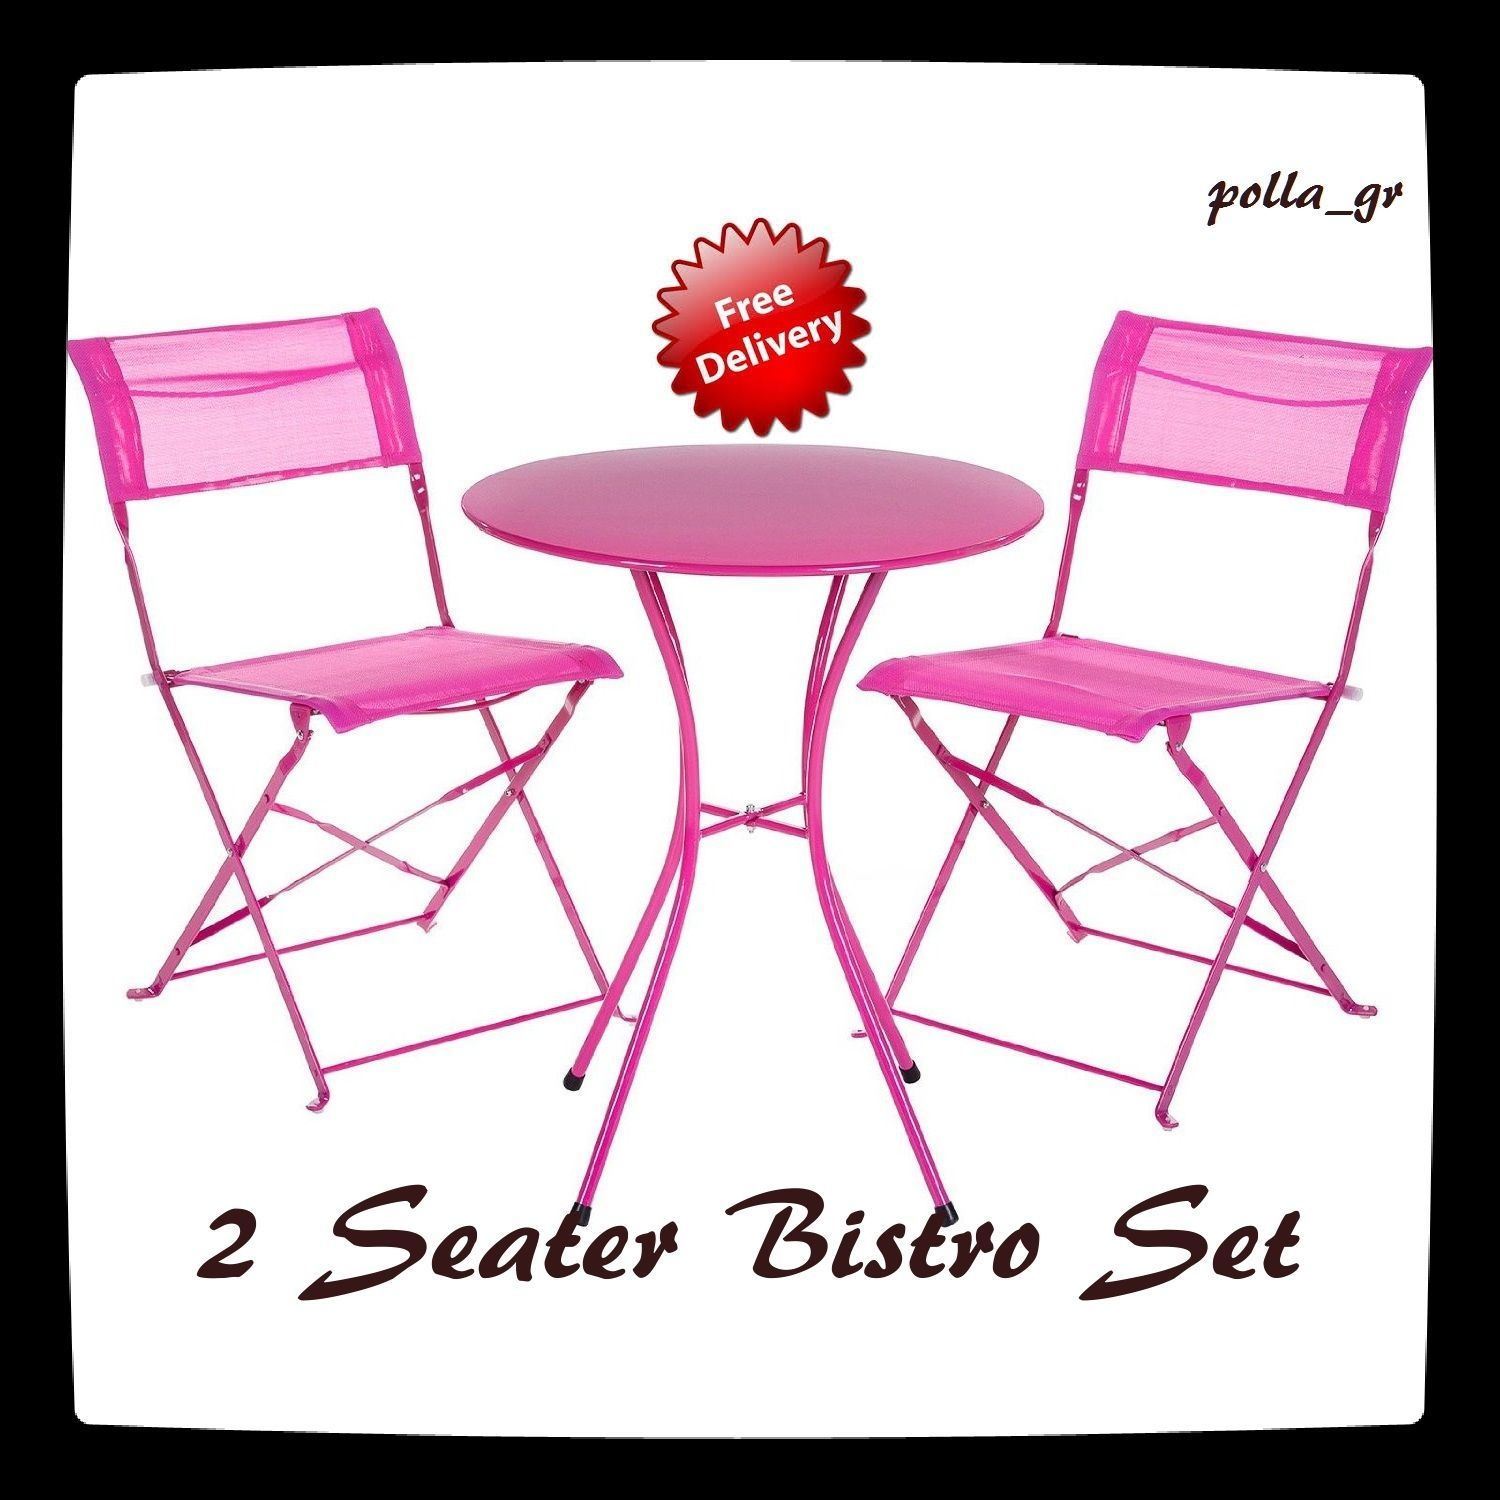 Details About Bistro Table Patio Set Garden Furniture 2 Seater Chairs  Outdoor Dining Balcony N